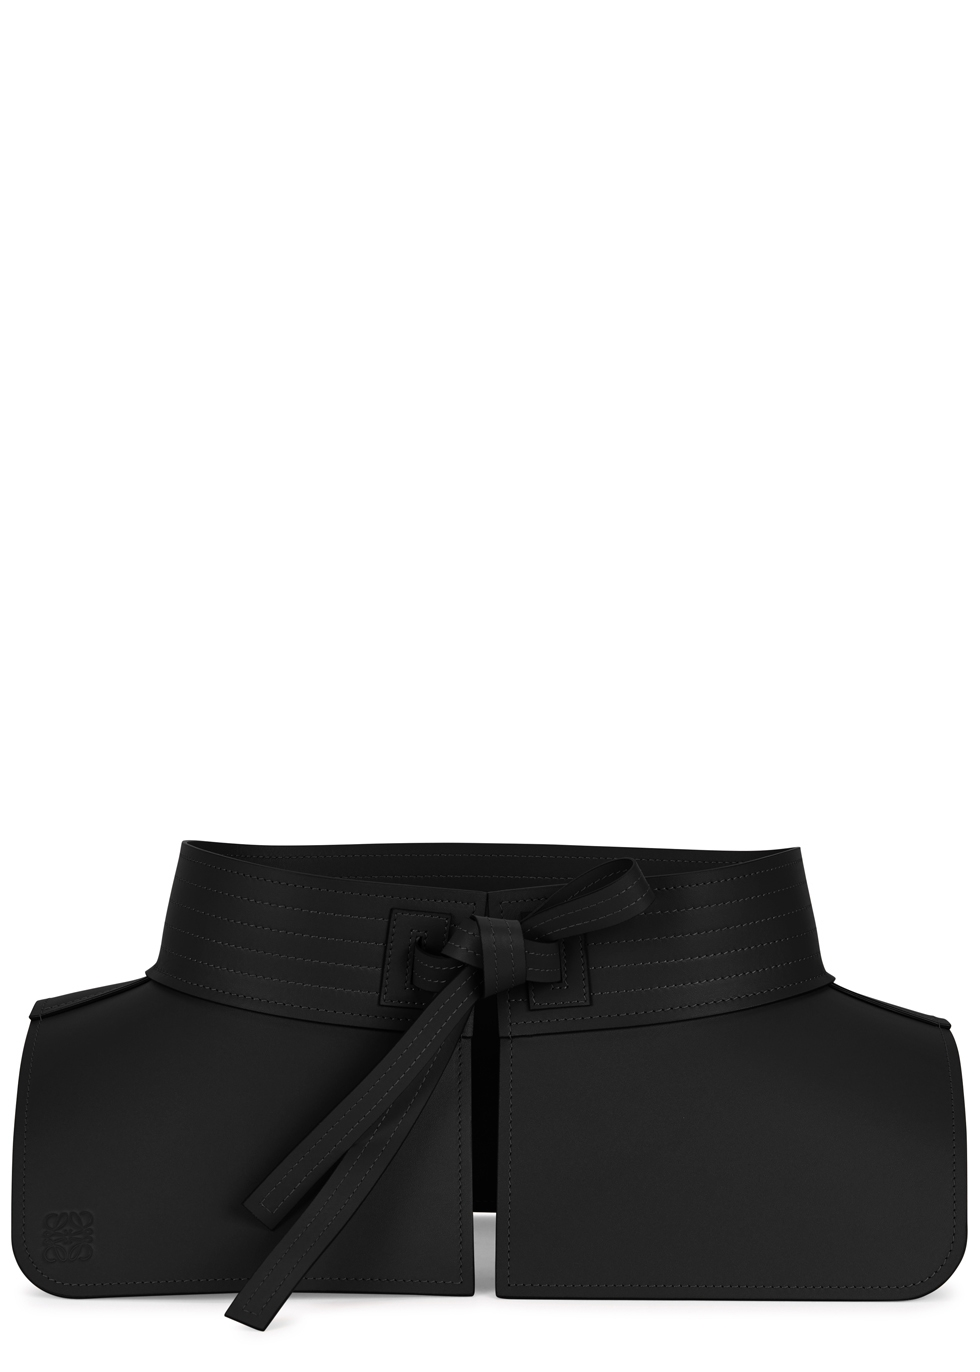 LOEWE OBI BLACK LEATHER WAIST BELT